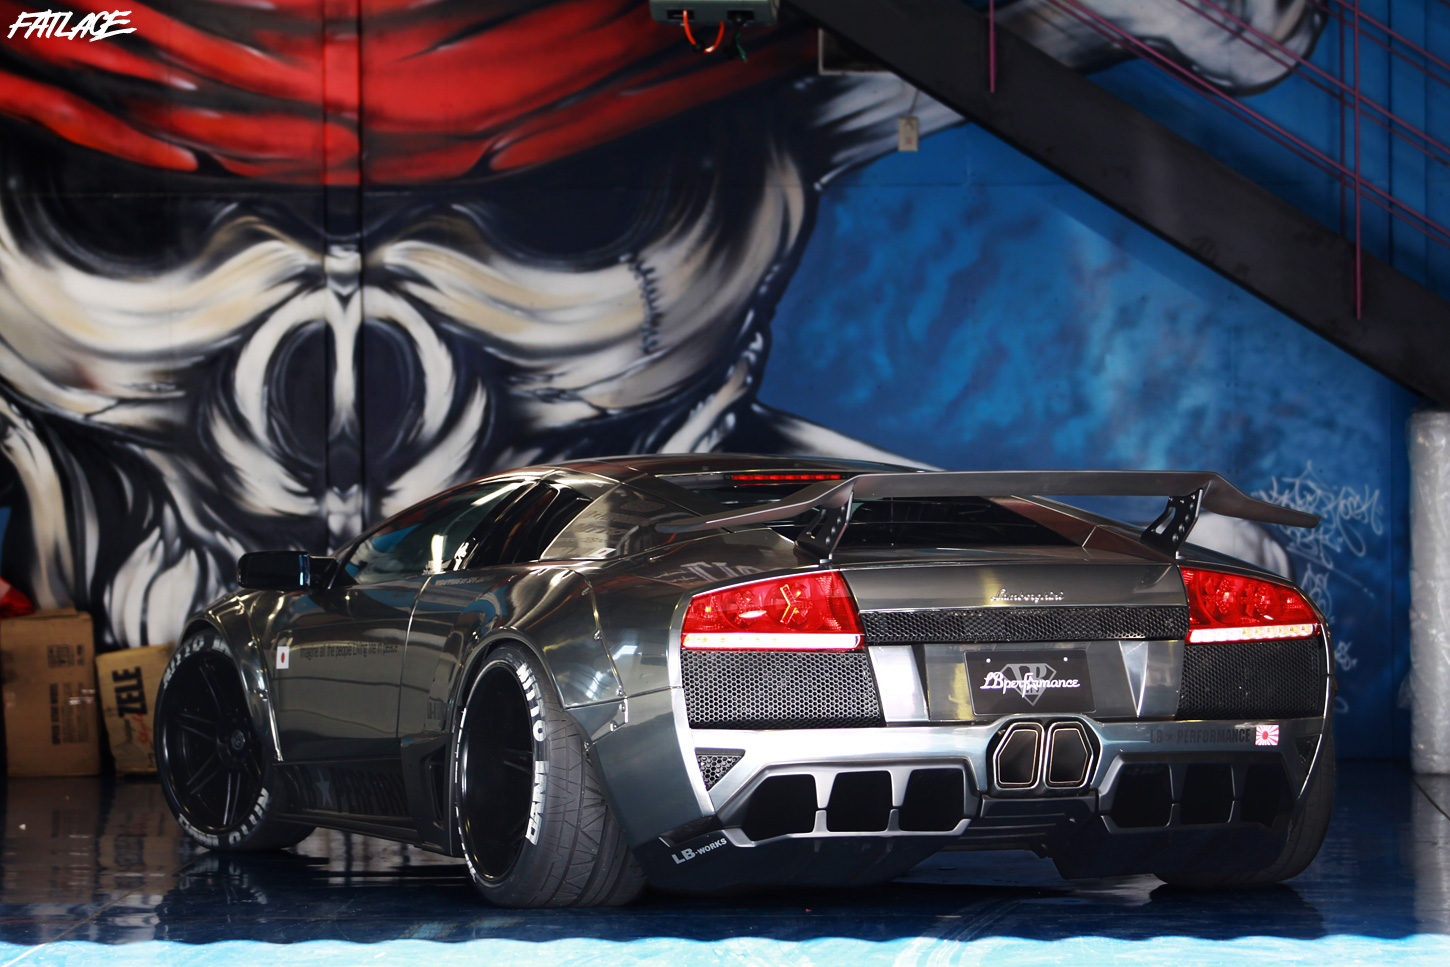 Liberty Walk Bulls Of Steel Fatlace Since 1999